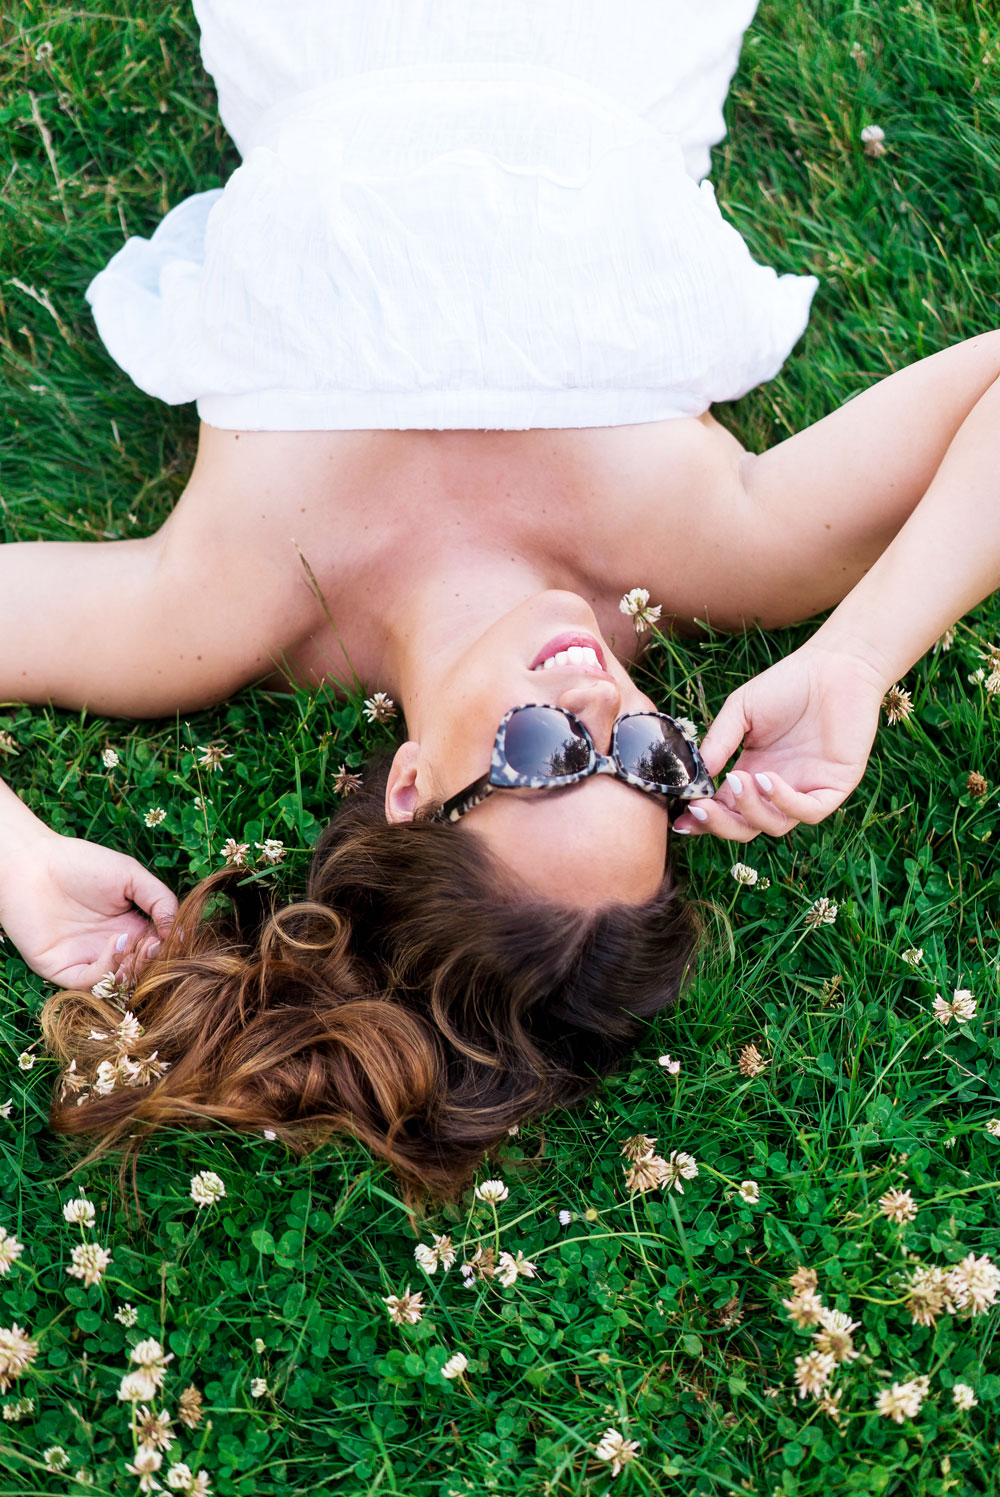 Summer beach outfit ideas in bailey nelson sunglasses by To Vogue or Bust